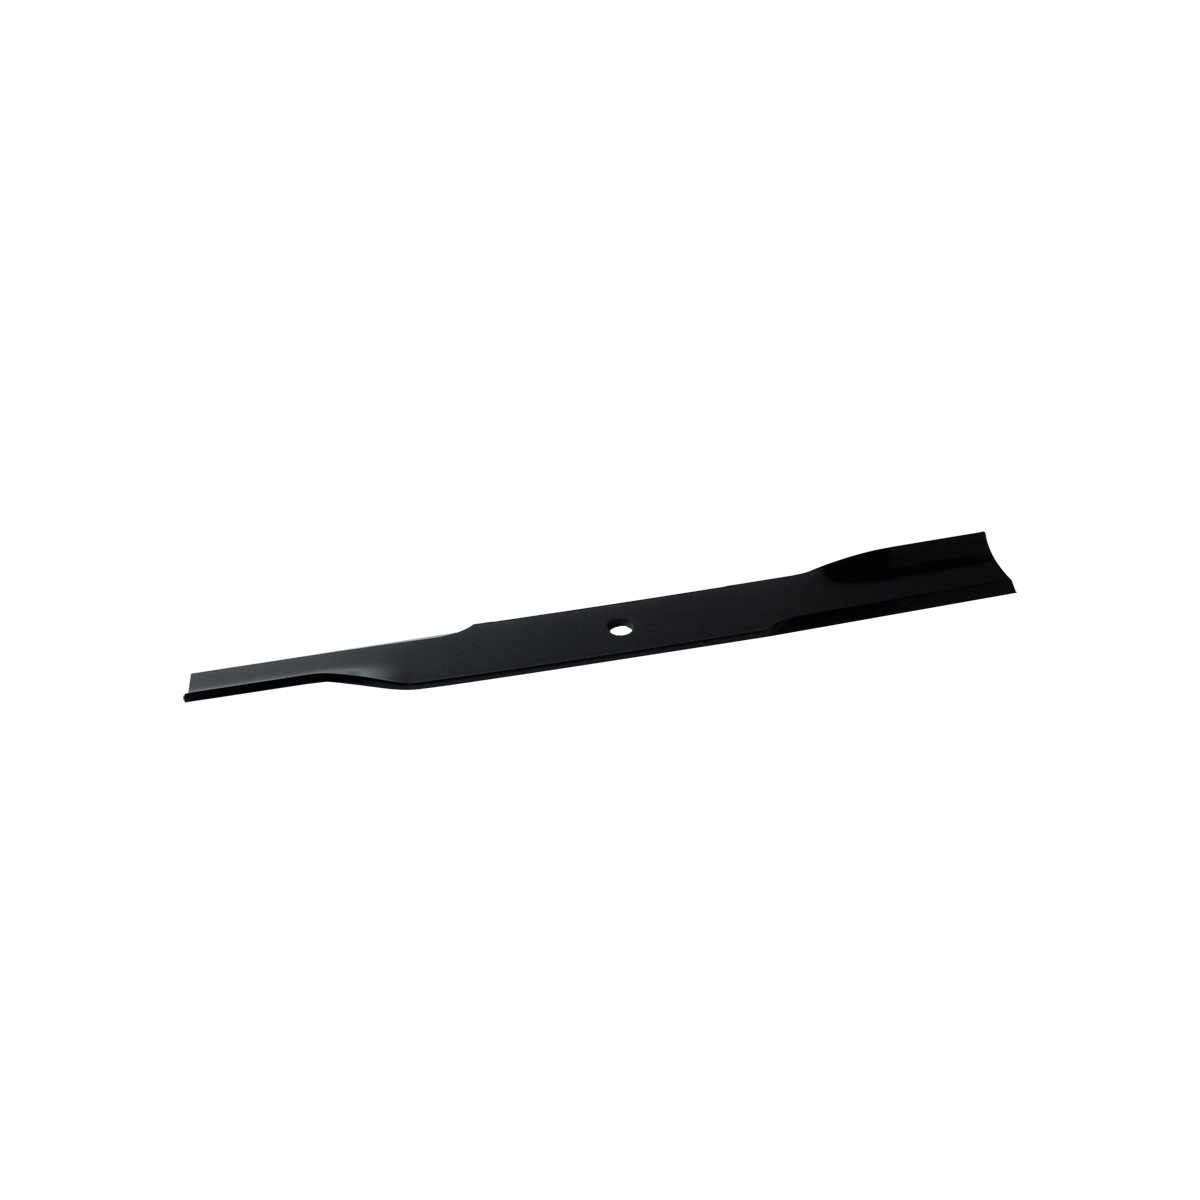 bahia blade (25 inch) powder black 742-04418-0637